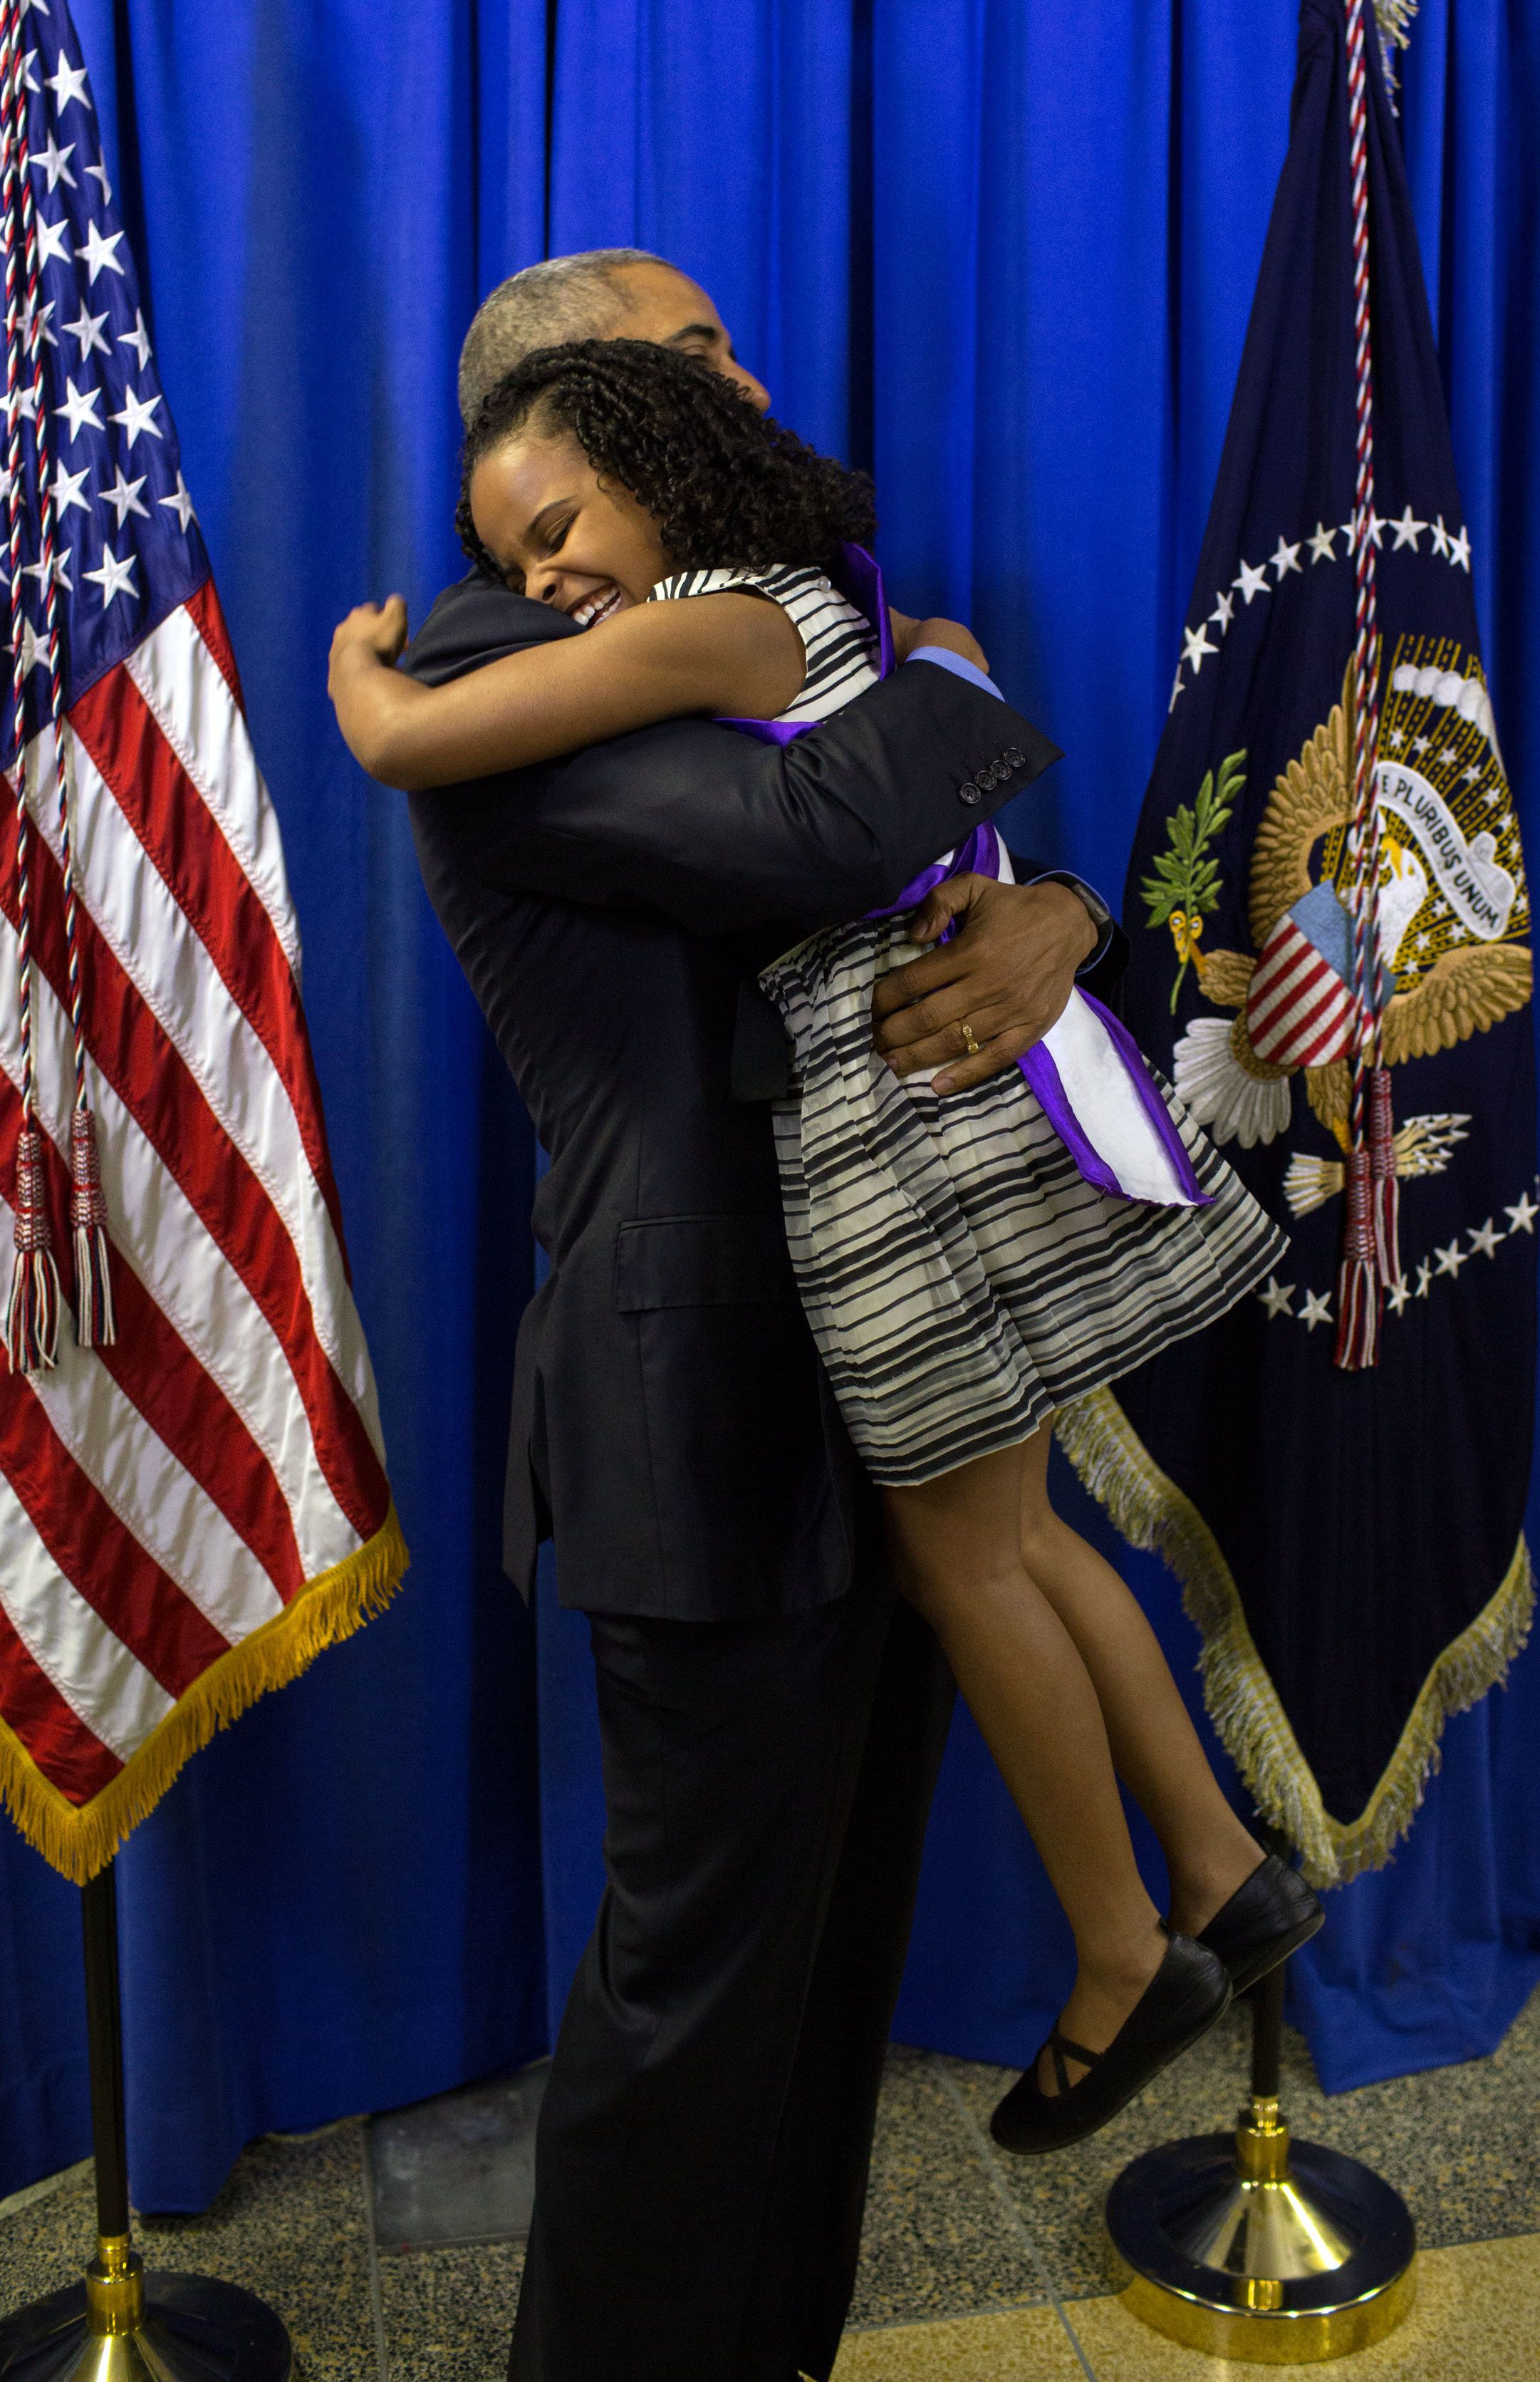 President Obama embraces eight-year-old Amariyanna Copeny, who wrote him a letter asking him to visit her hometown of Flint, Michigan as they battle the devastating water crisis and what she's doing to help. For a fun comparison, this is Amariyanna (also Little Miss Flint) meeting President-Elect T*ump.